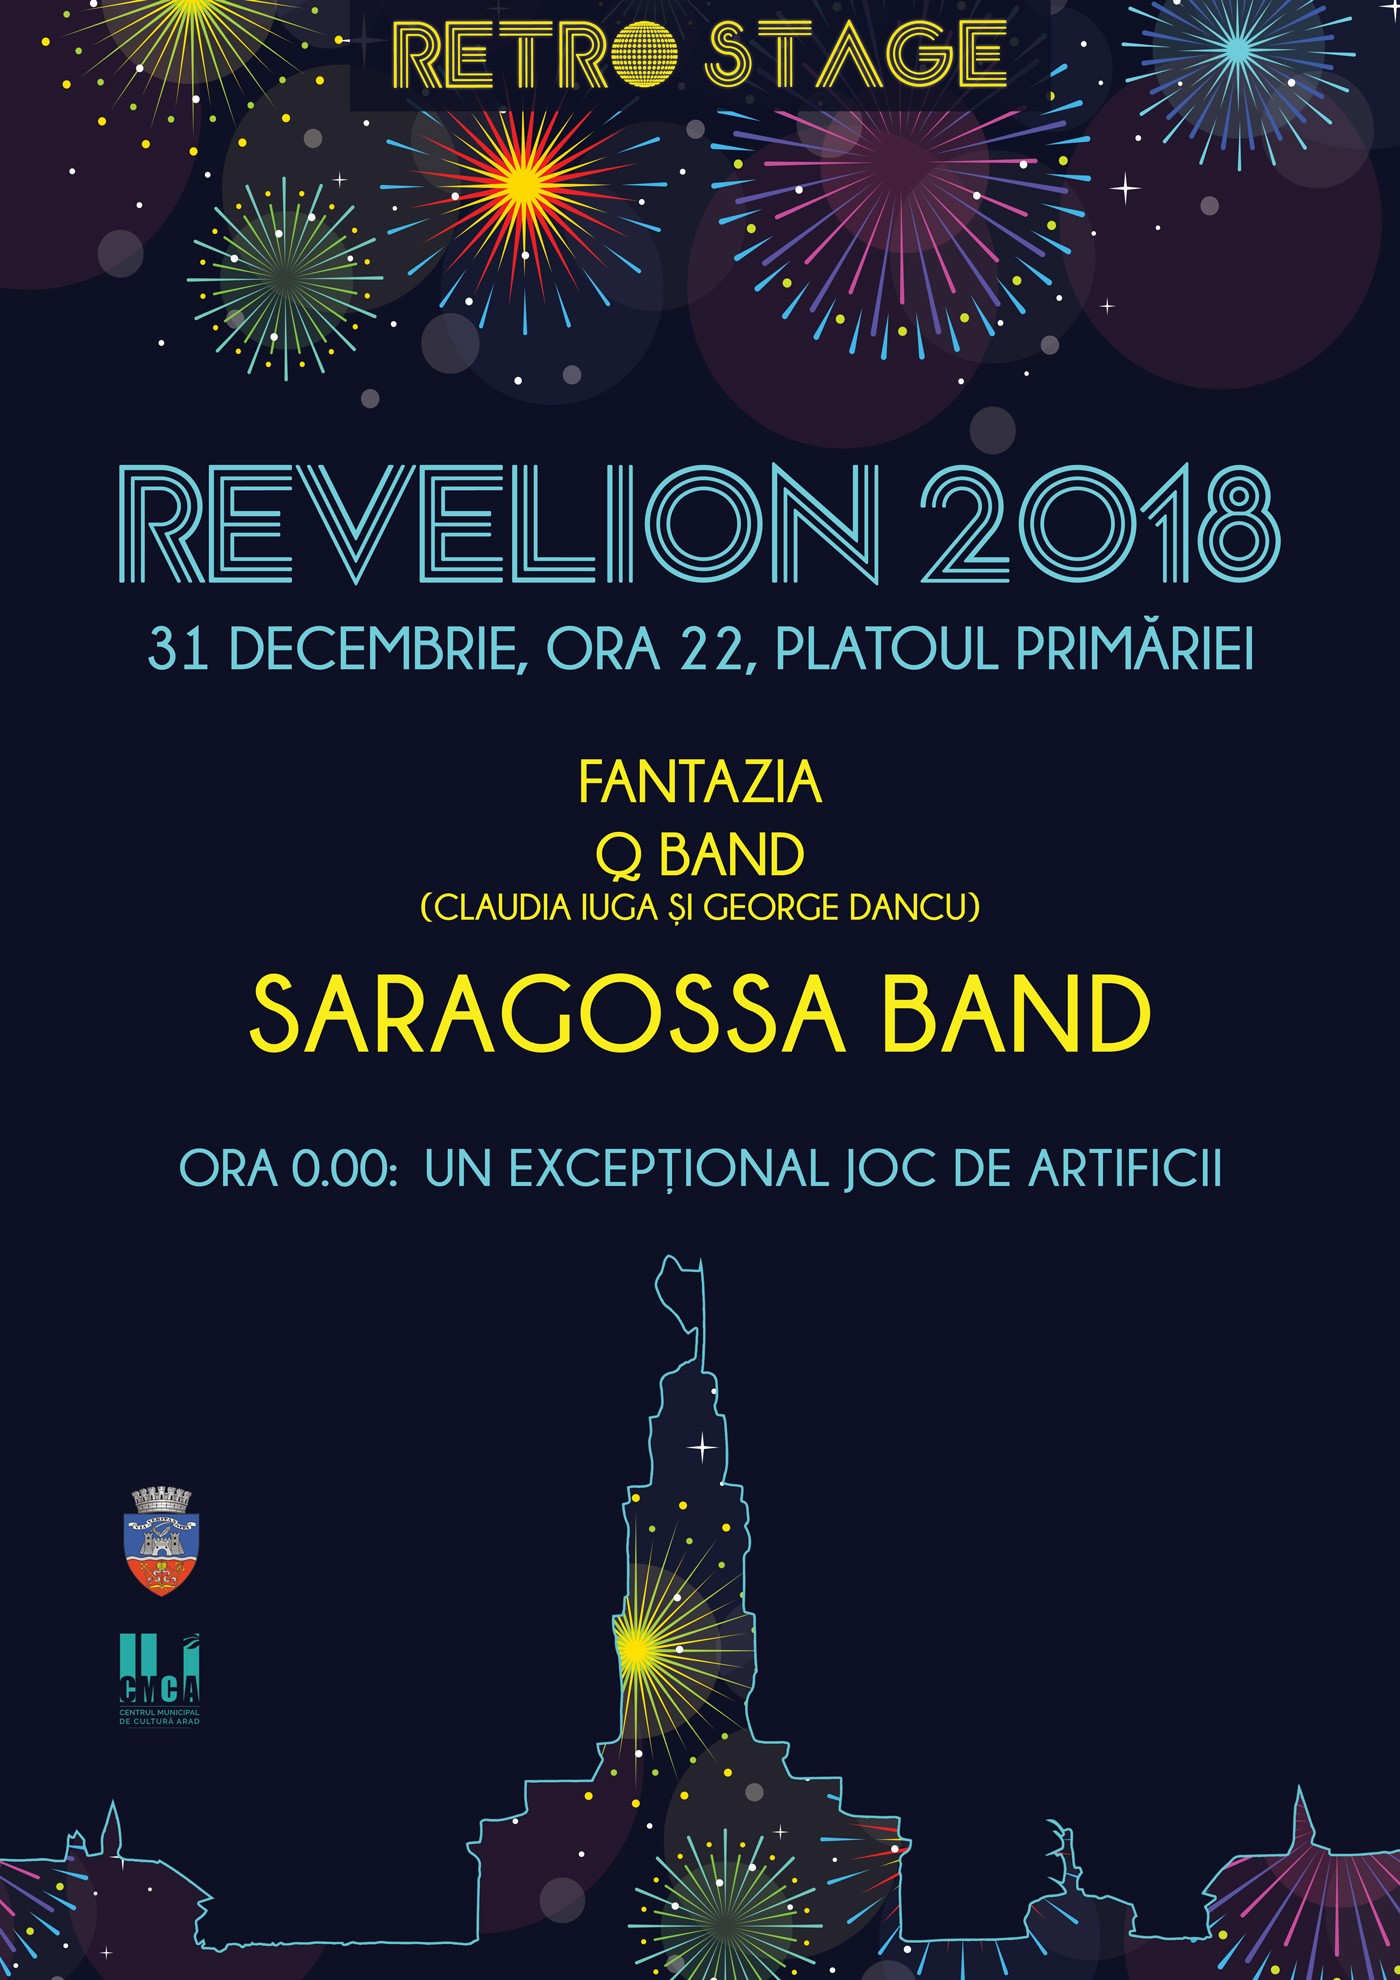 Saragossa Band band will sing at new year's Eve in 2018, in the center of Arad